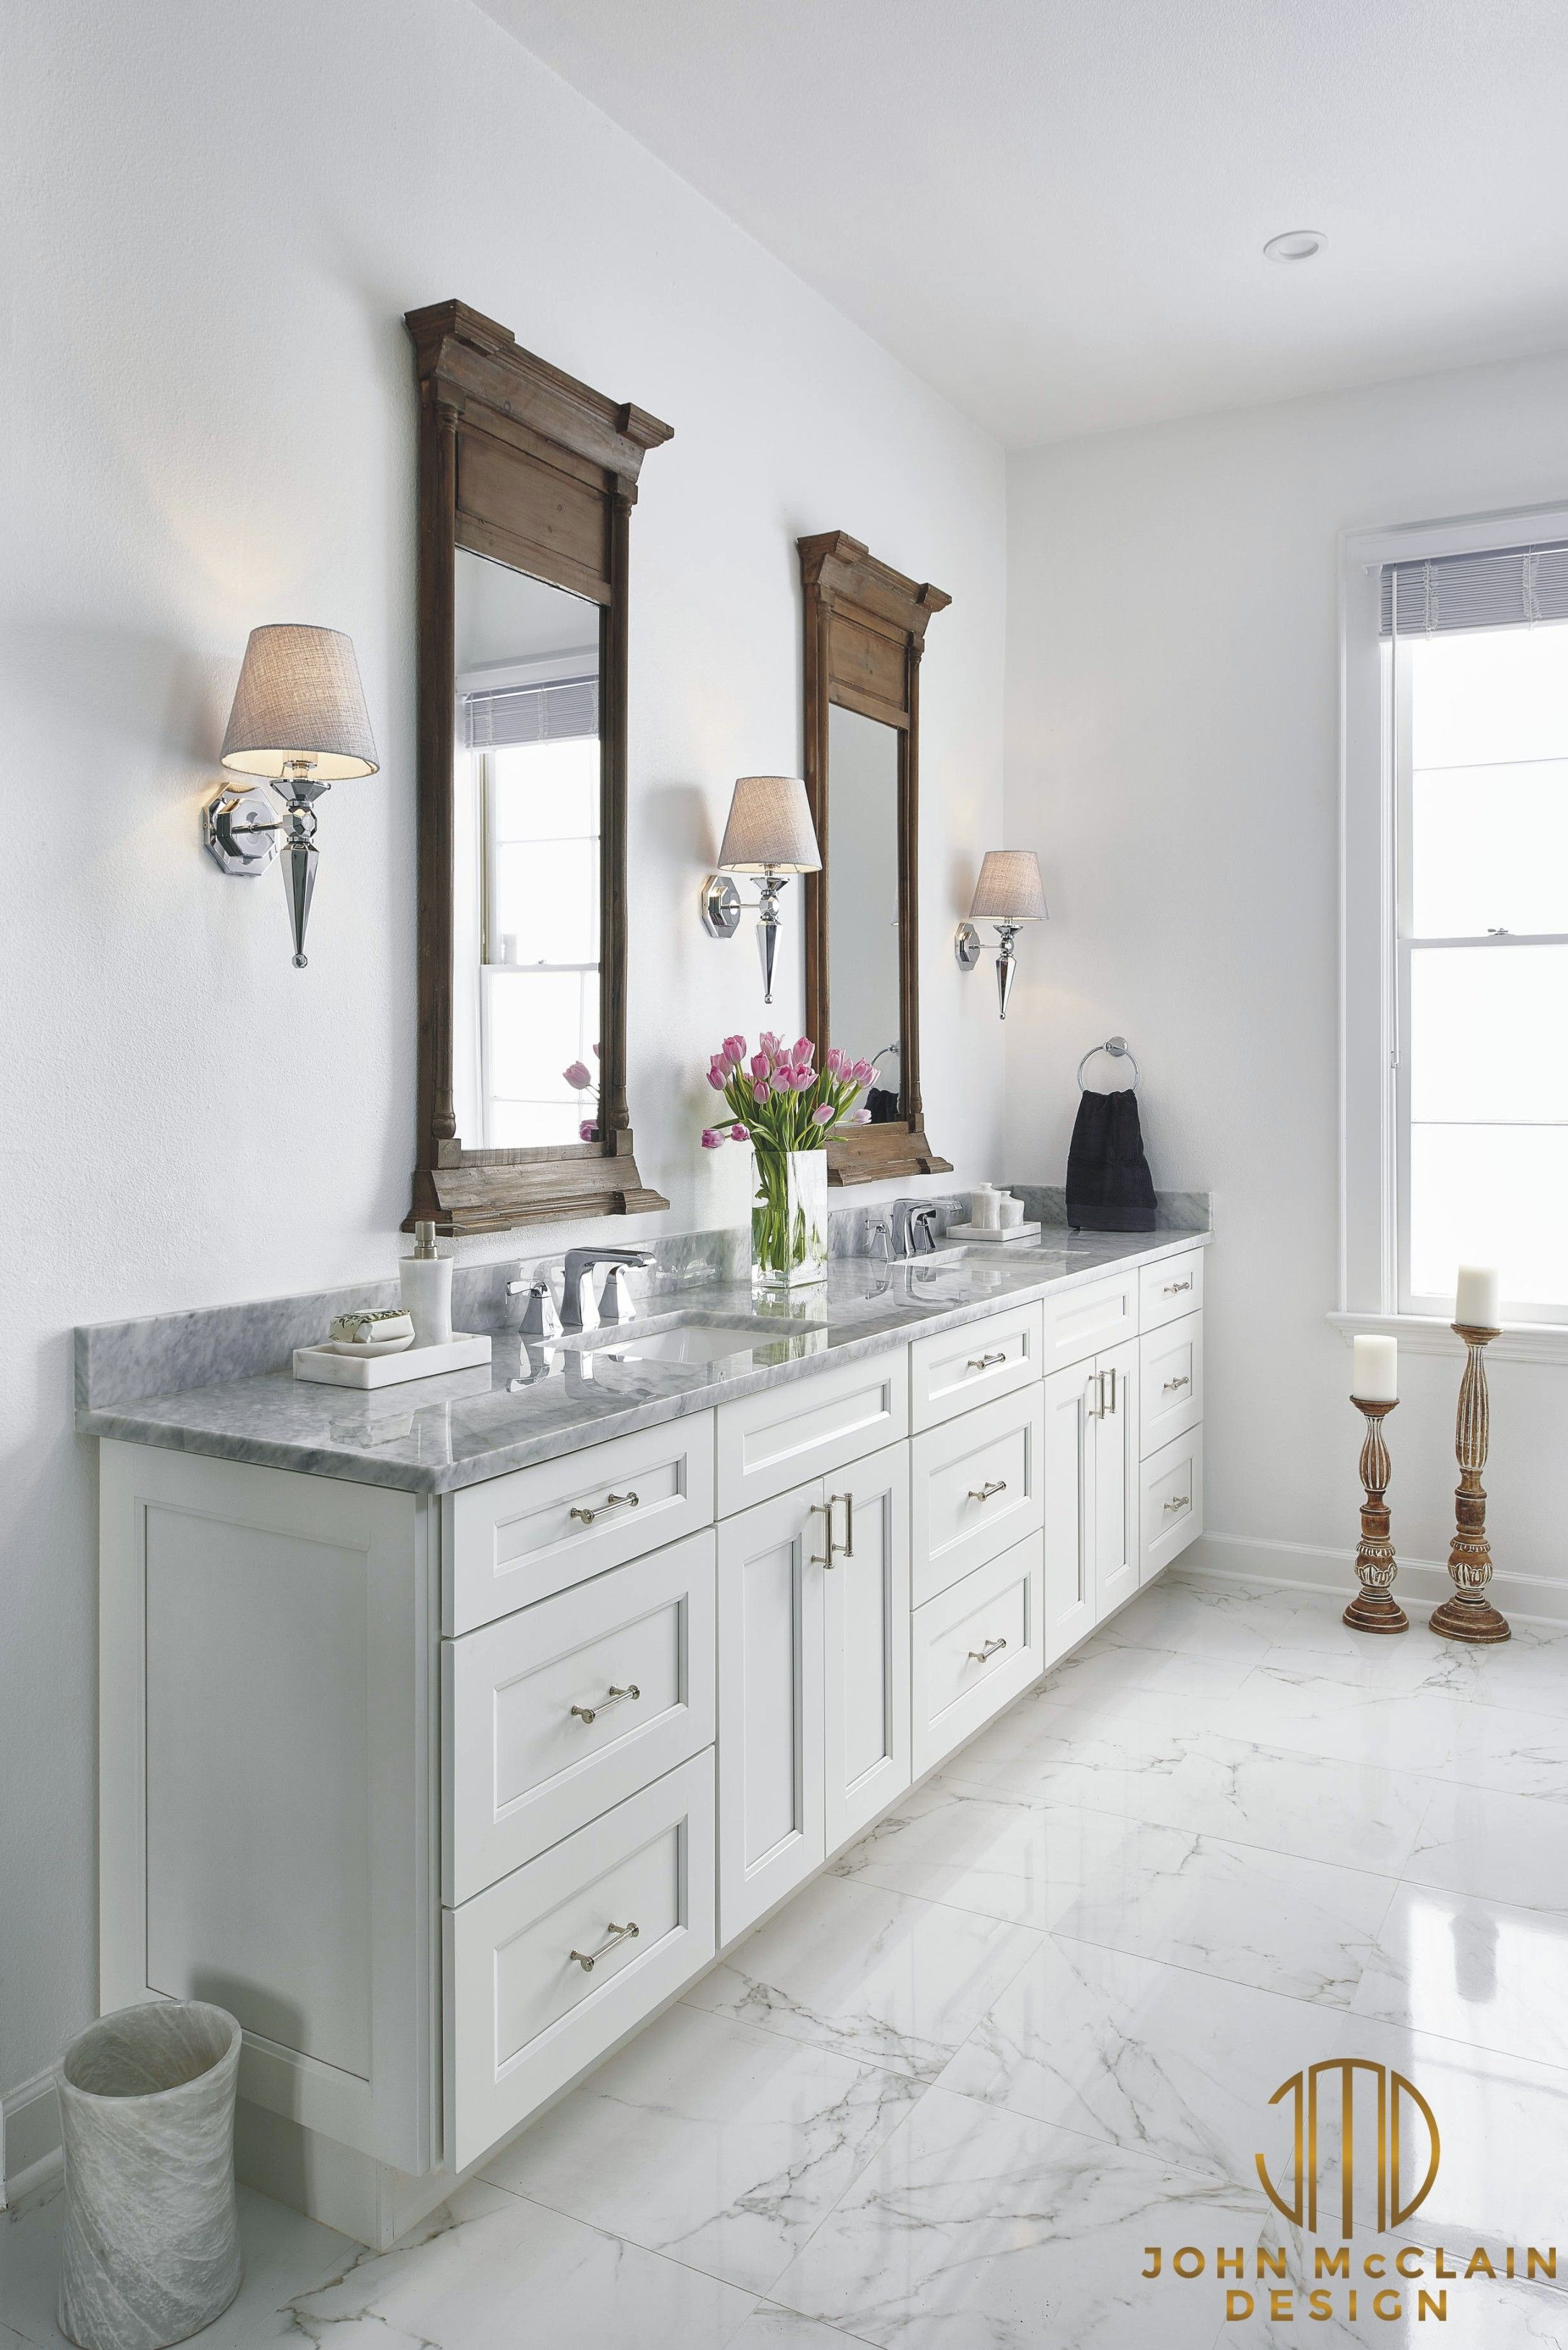 White shaker style cabinetry with carrara marble countertops ...